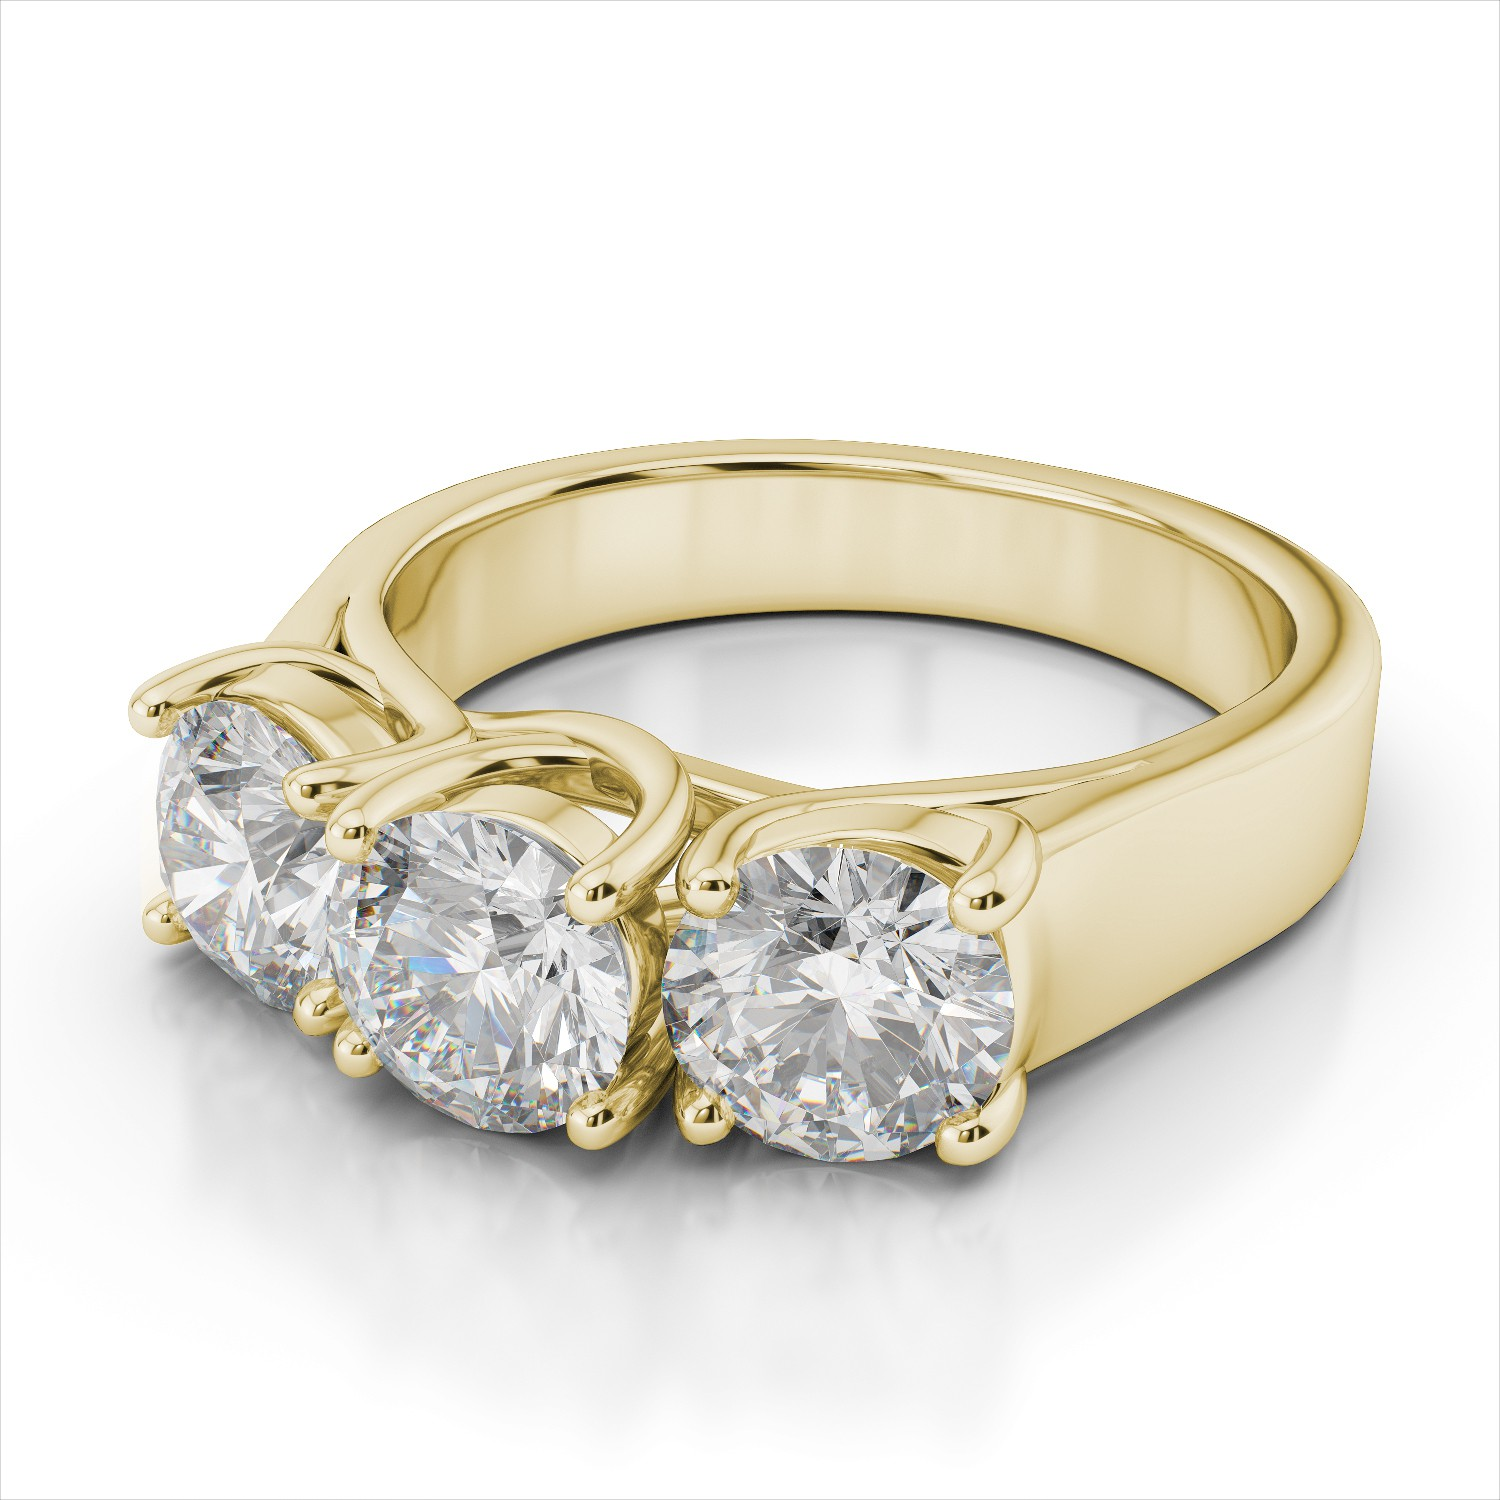 cushion ring forevermark cut martha diamond vert jewellery weddings rings gem gold rose premier engagement stewart in